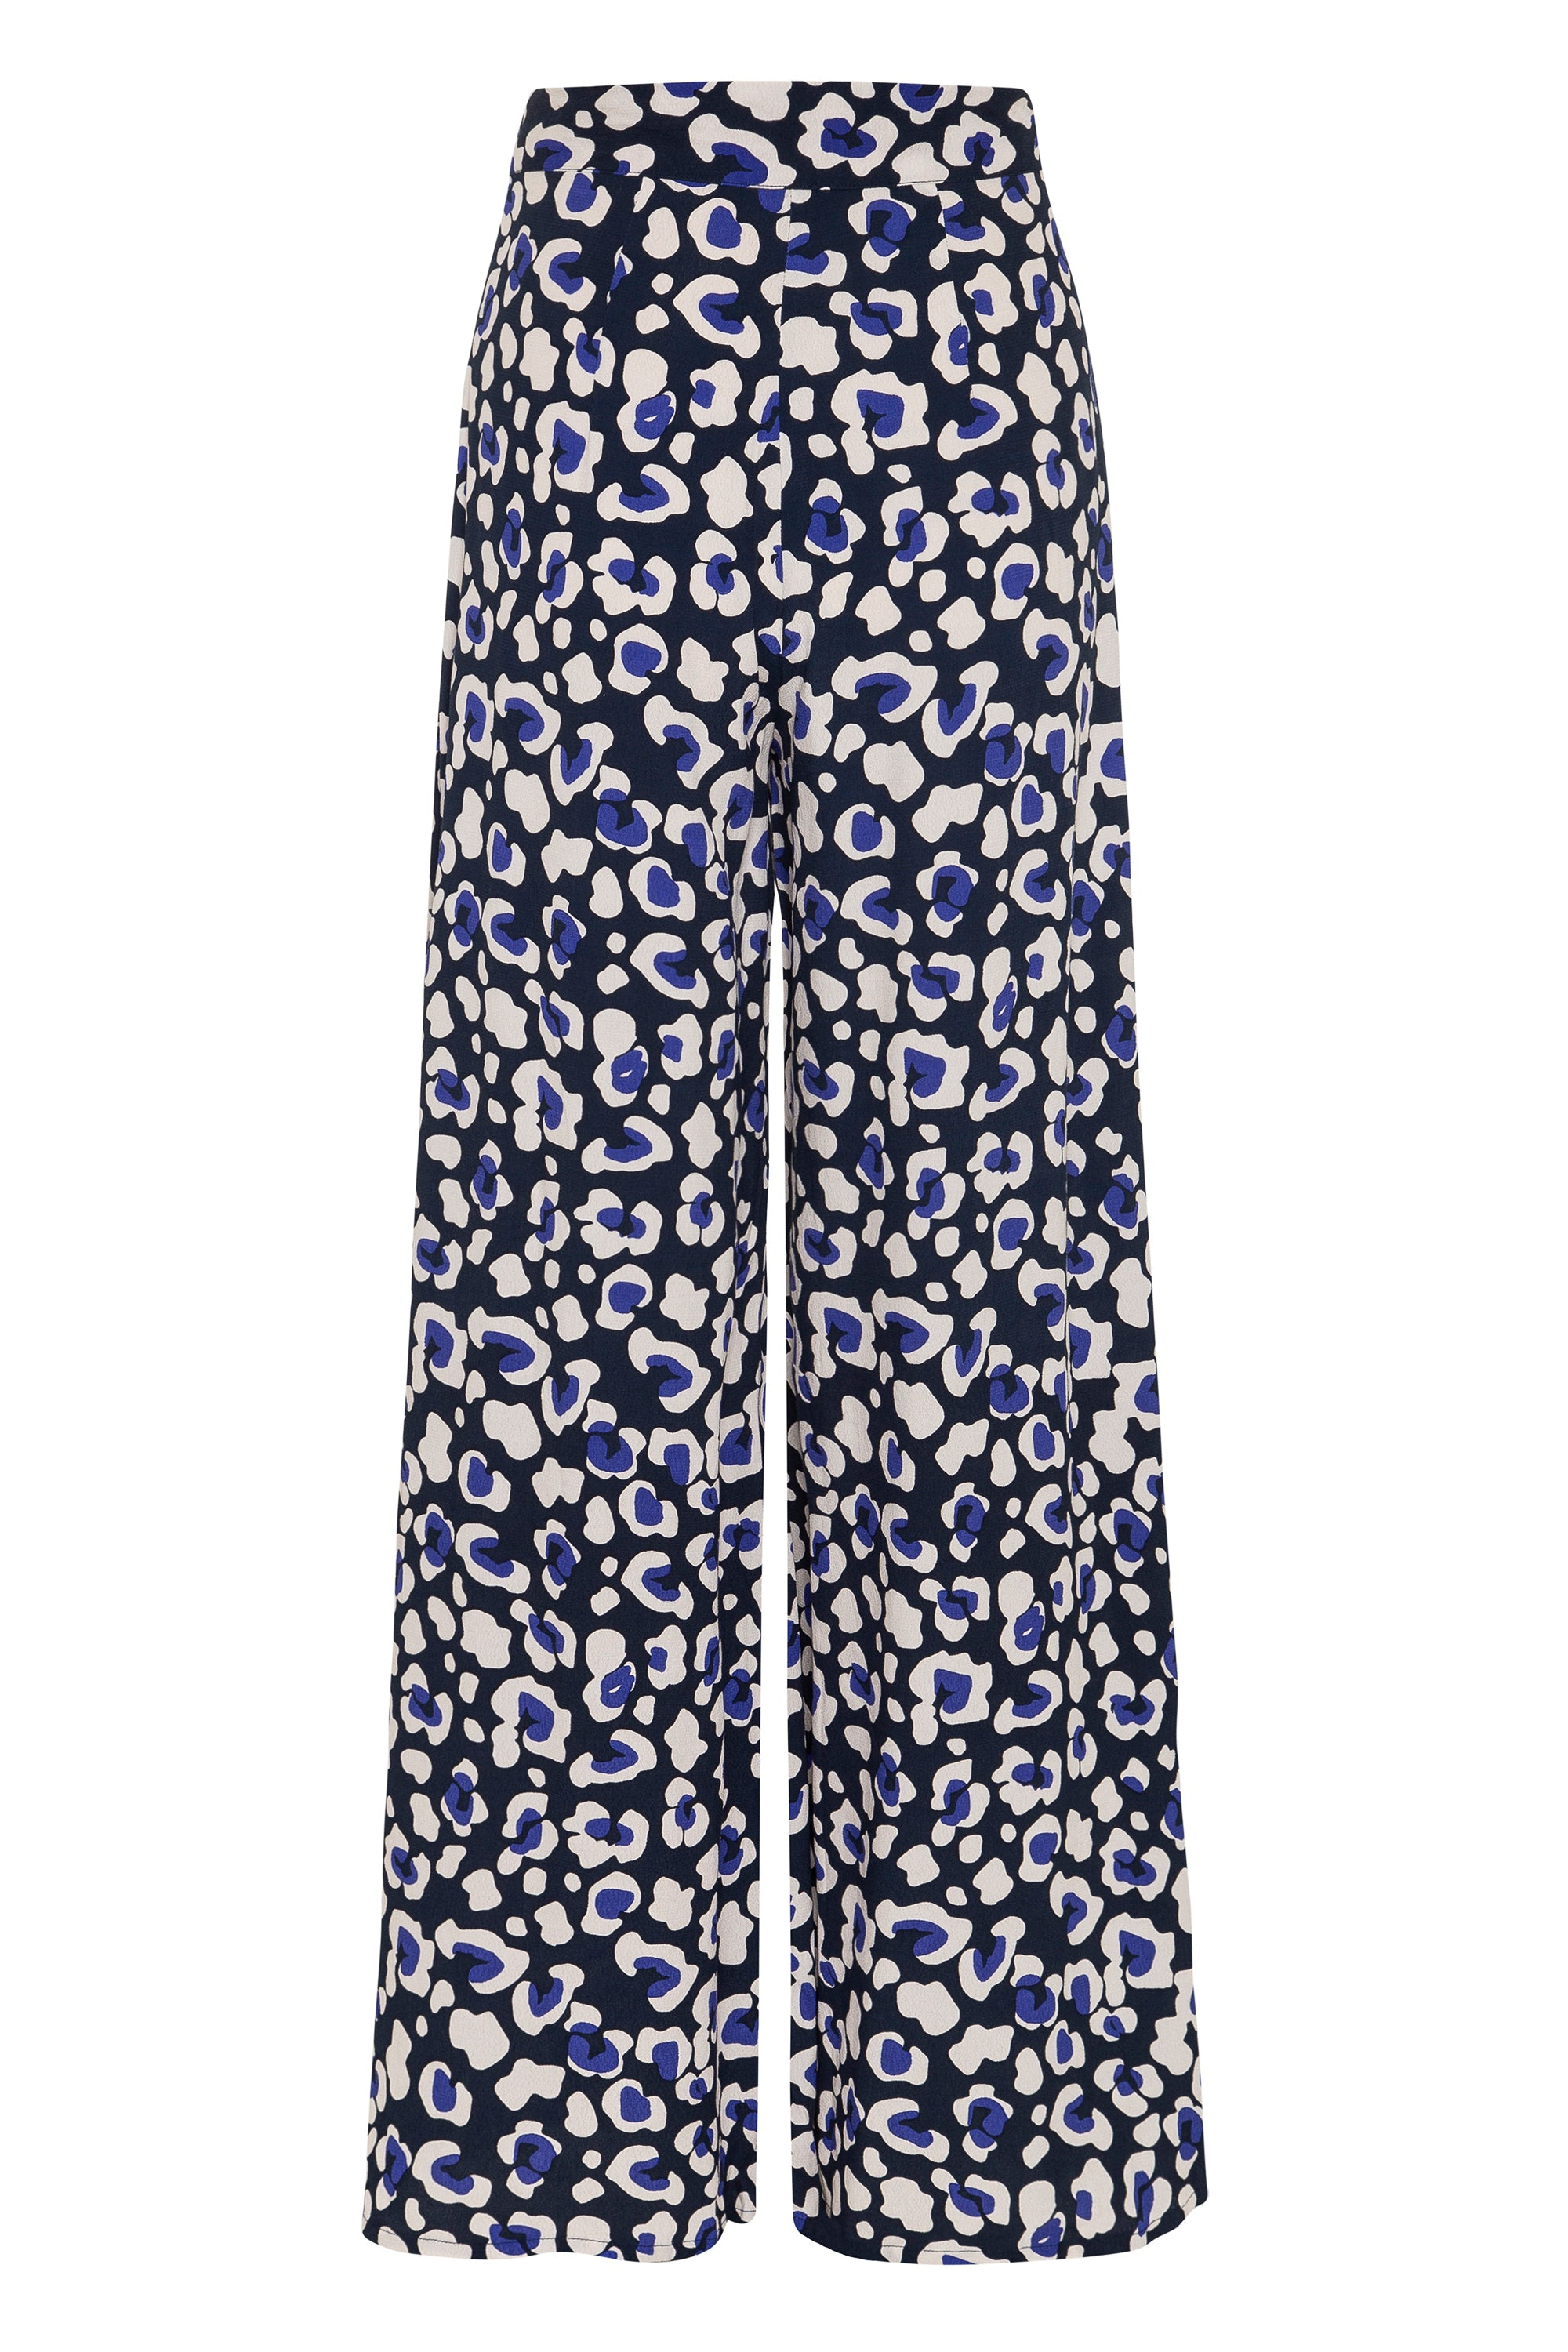 Charlie Pants In Navy Leopard